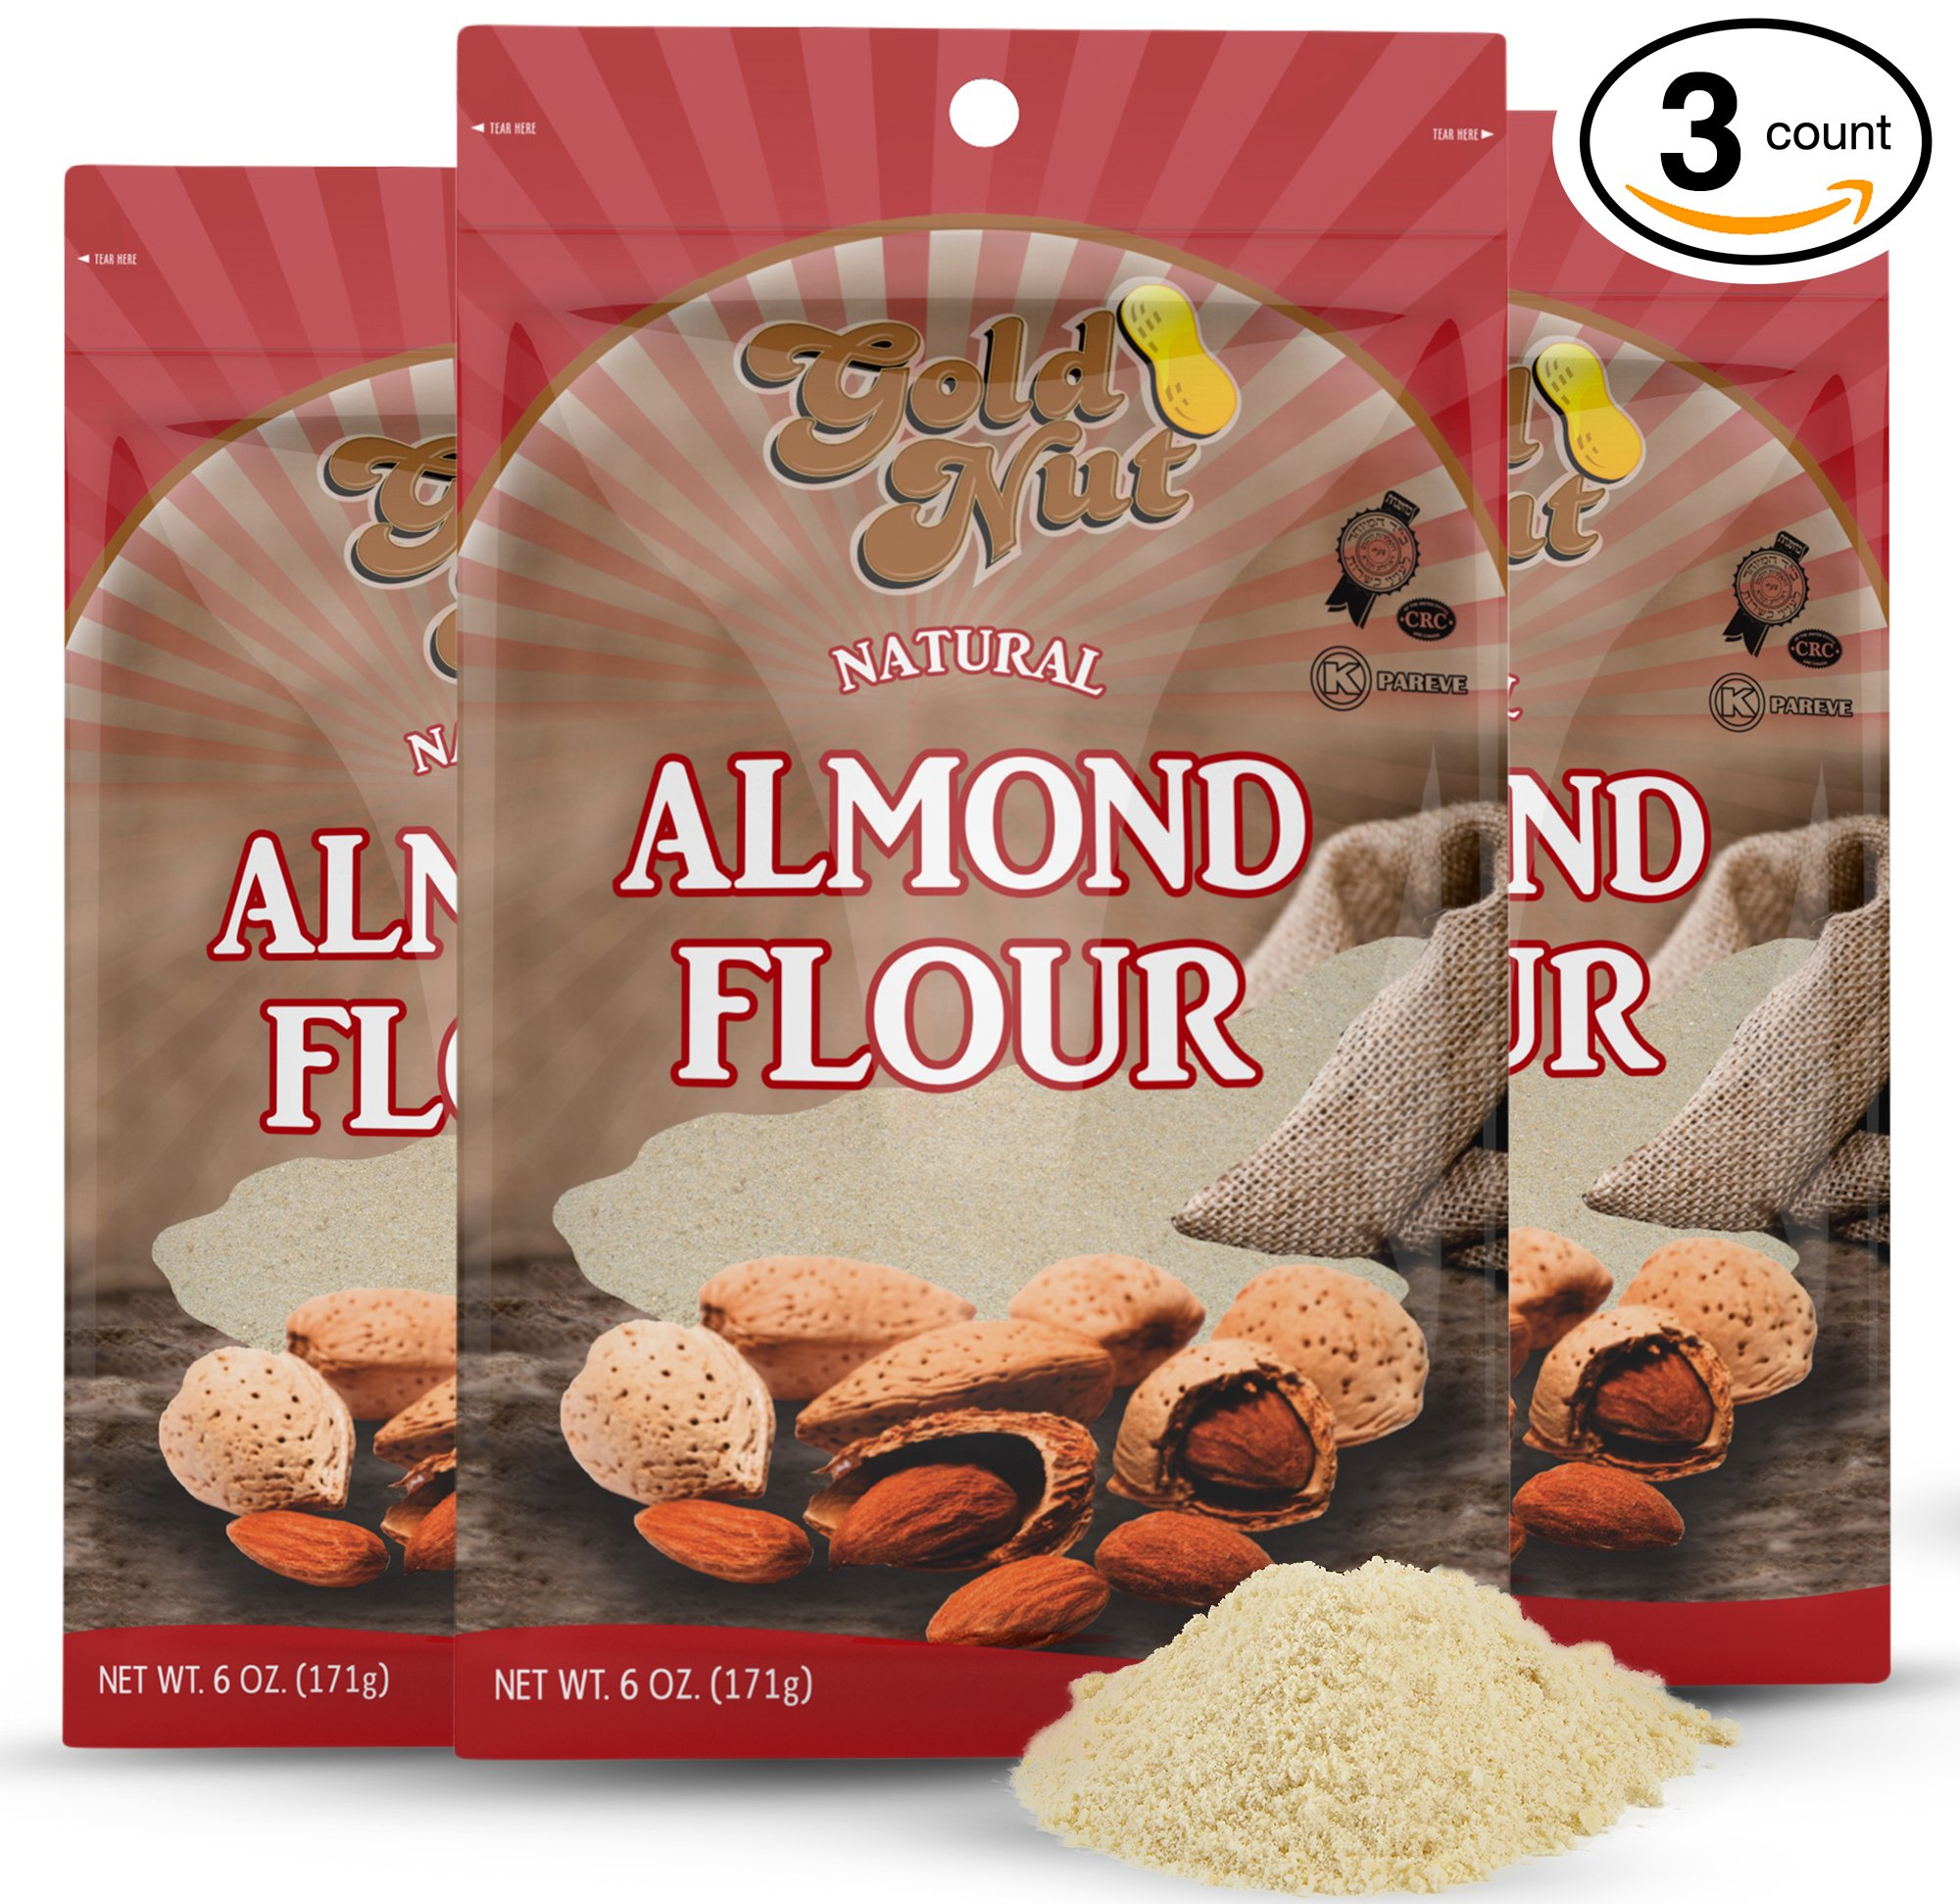 Gold Nut Blanched Almond Flour 18 oz – Grain and Gluten Free, All Natural, Low Carb - 100% Super Fine Ground Almonds For Baking and Cooking – 3 x 6oz Bags with Zip-Top for Freshness